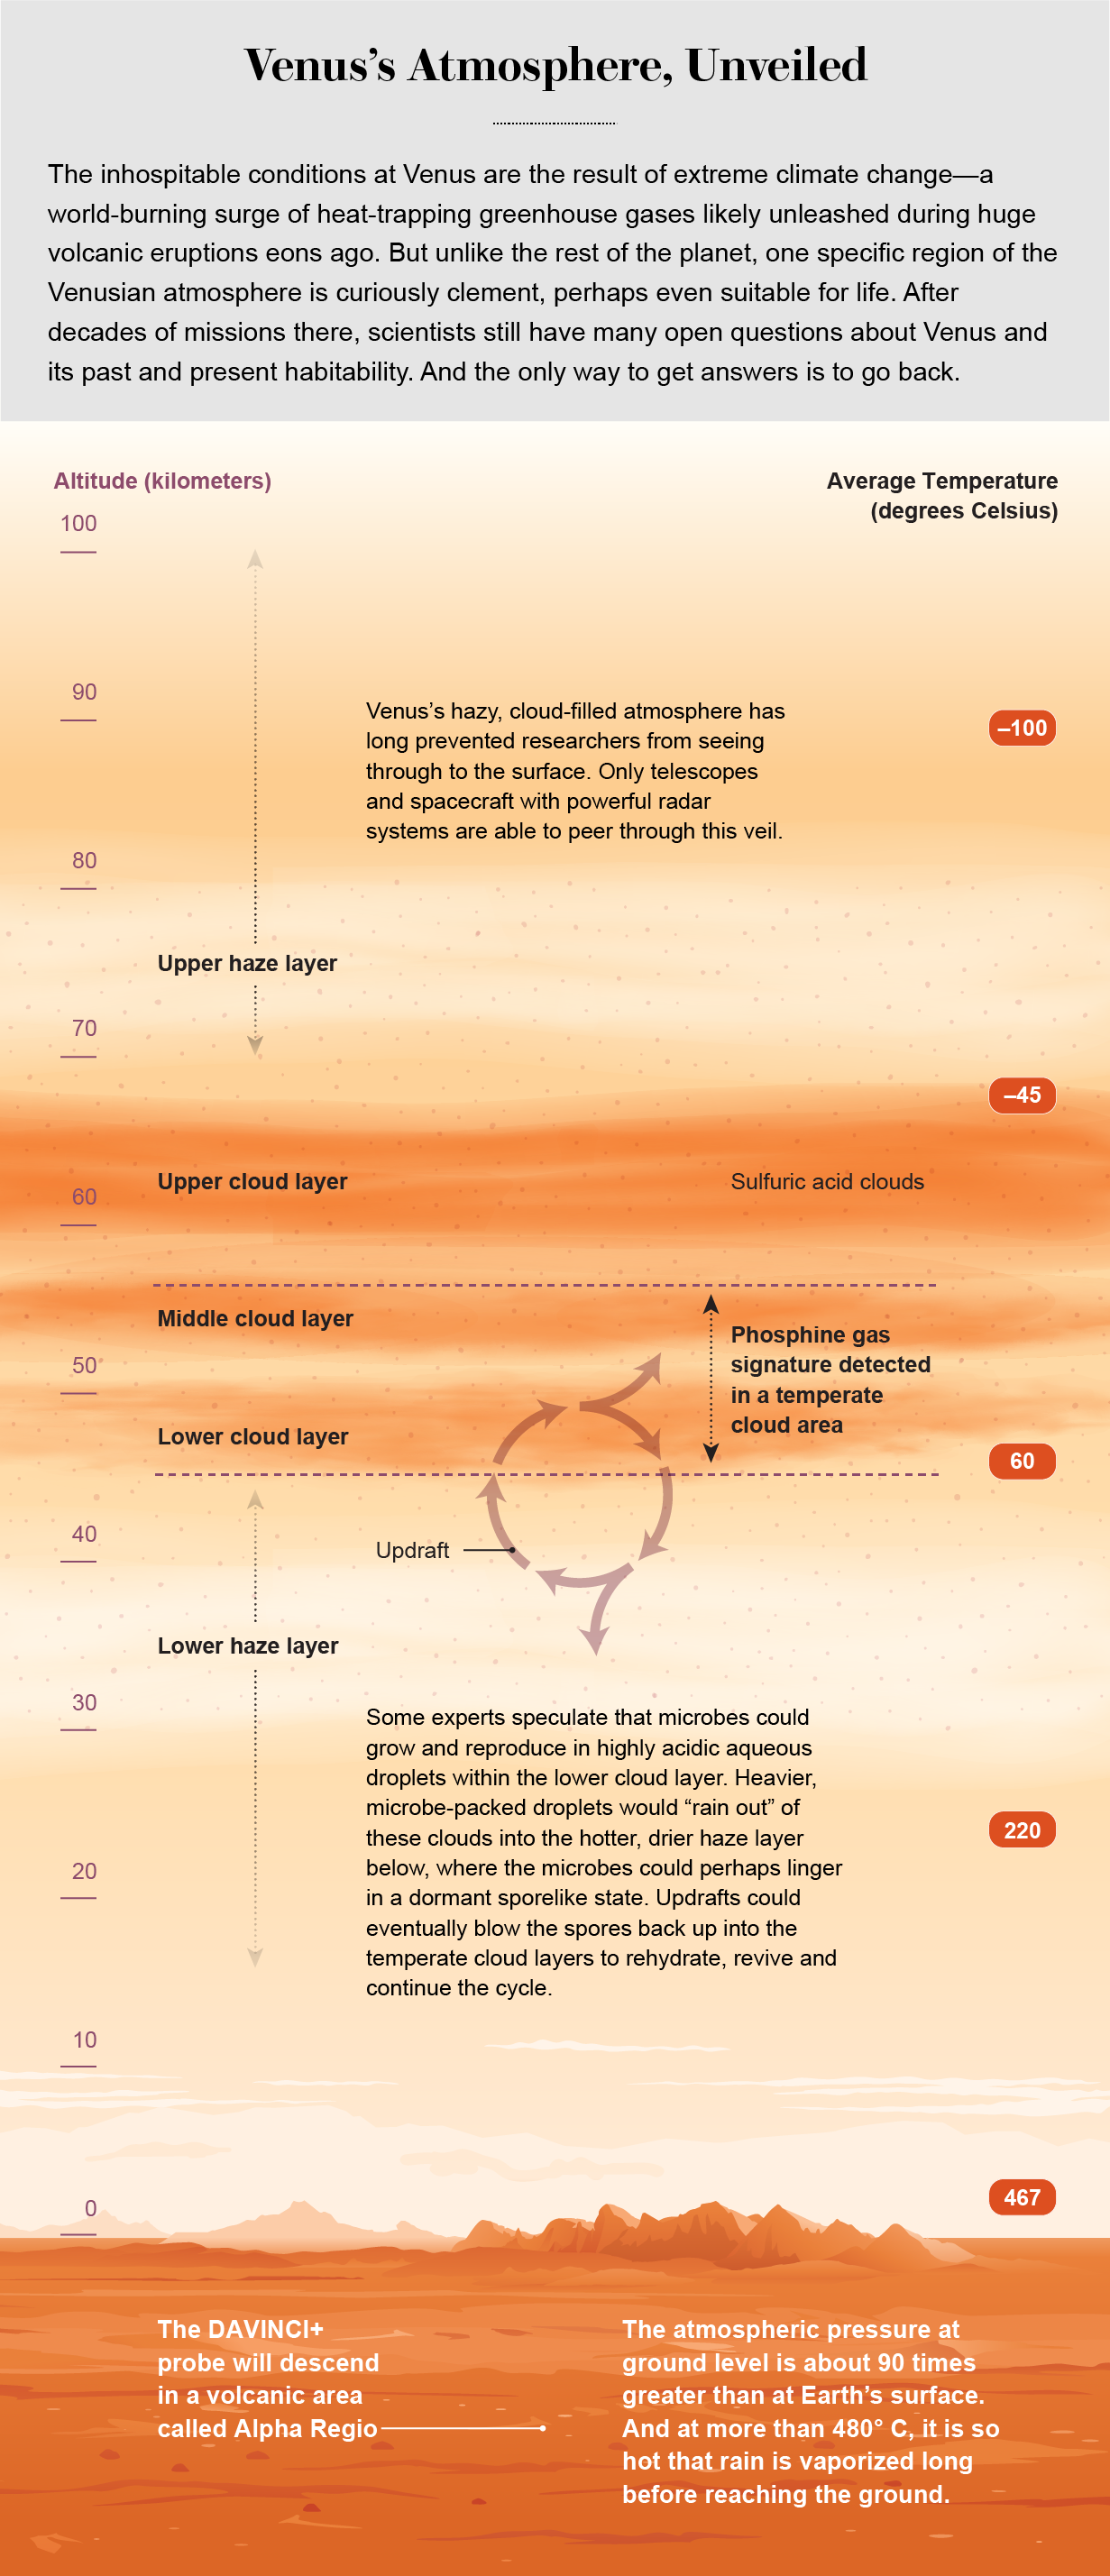 Graphic shows altitudes and temperatures of the major layers of Venus's atmosphere.